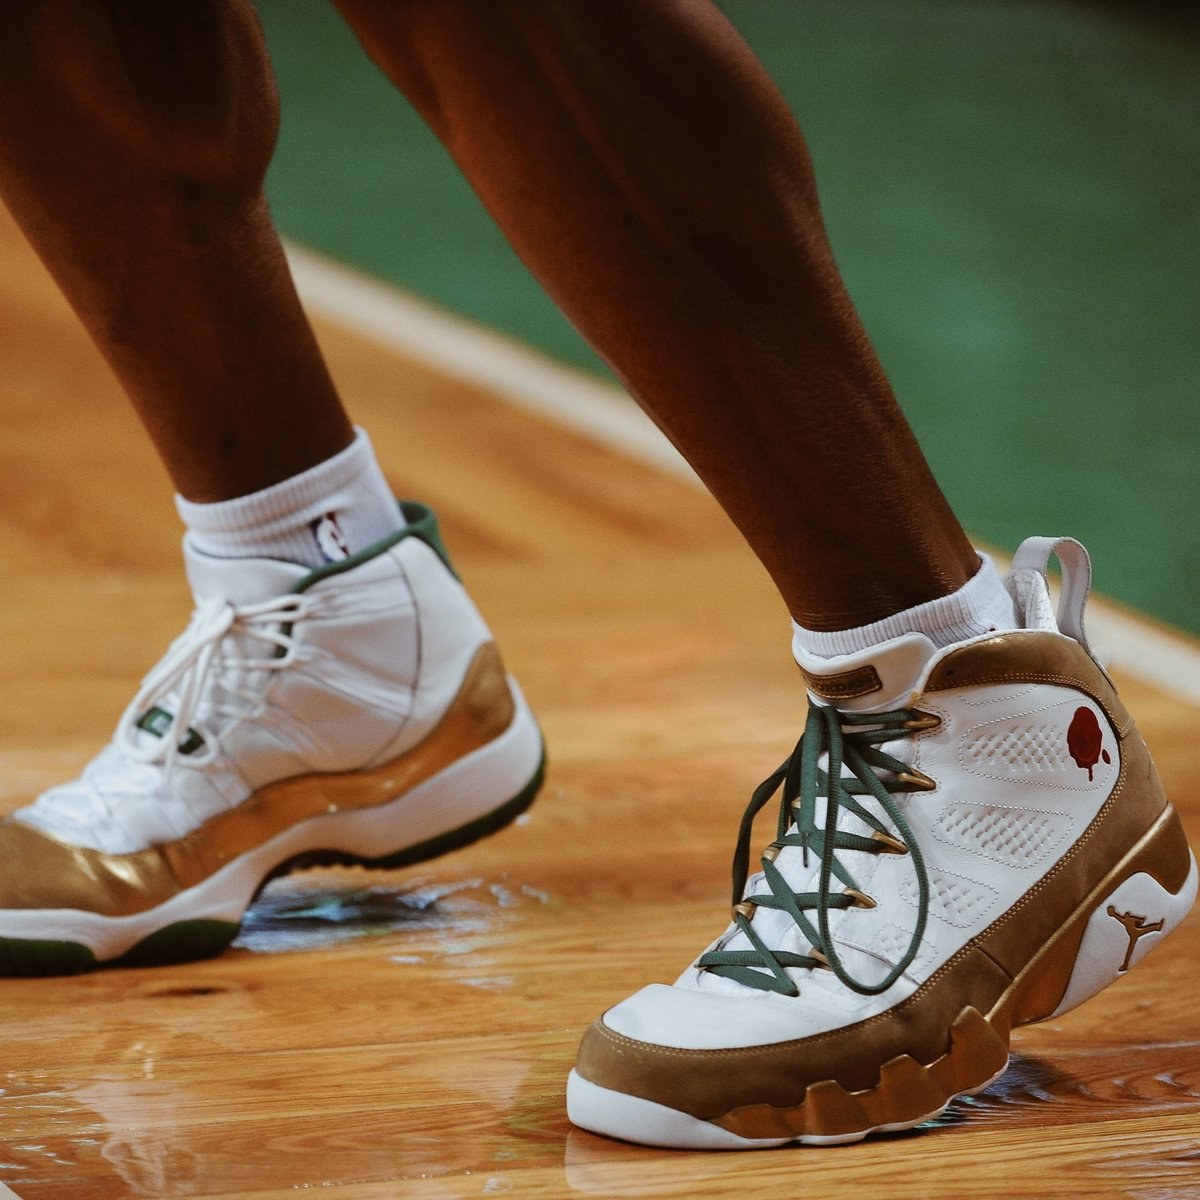 18eadba9461d1e ray allen wore mismatched air jordan ix and air jordan xi pes one of the  craziest